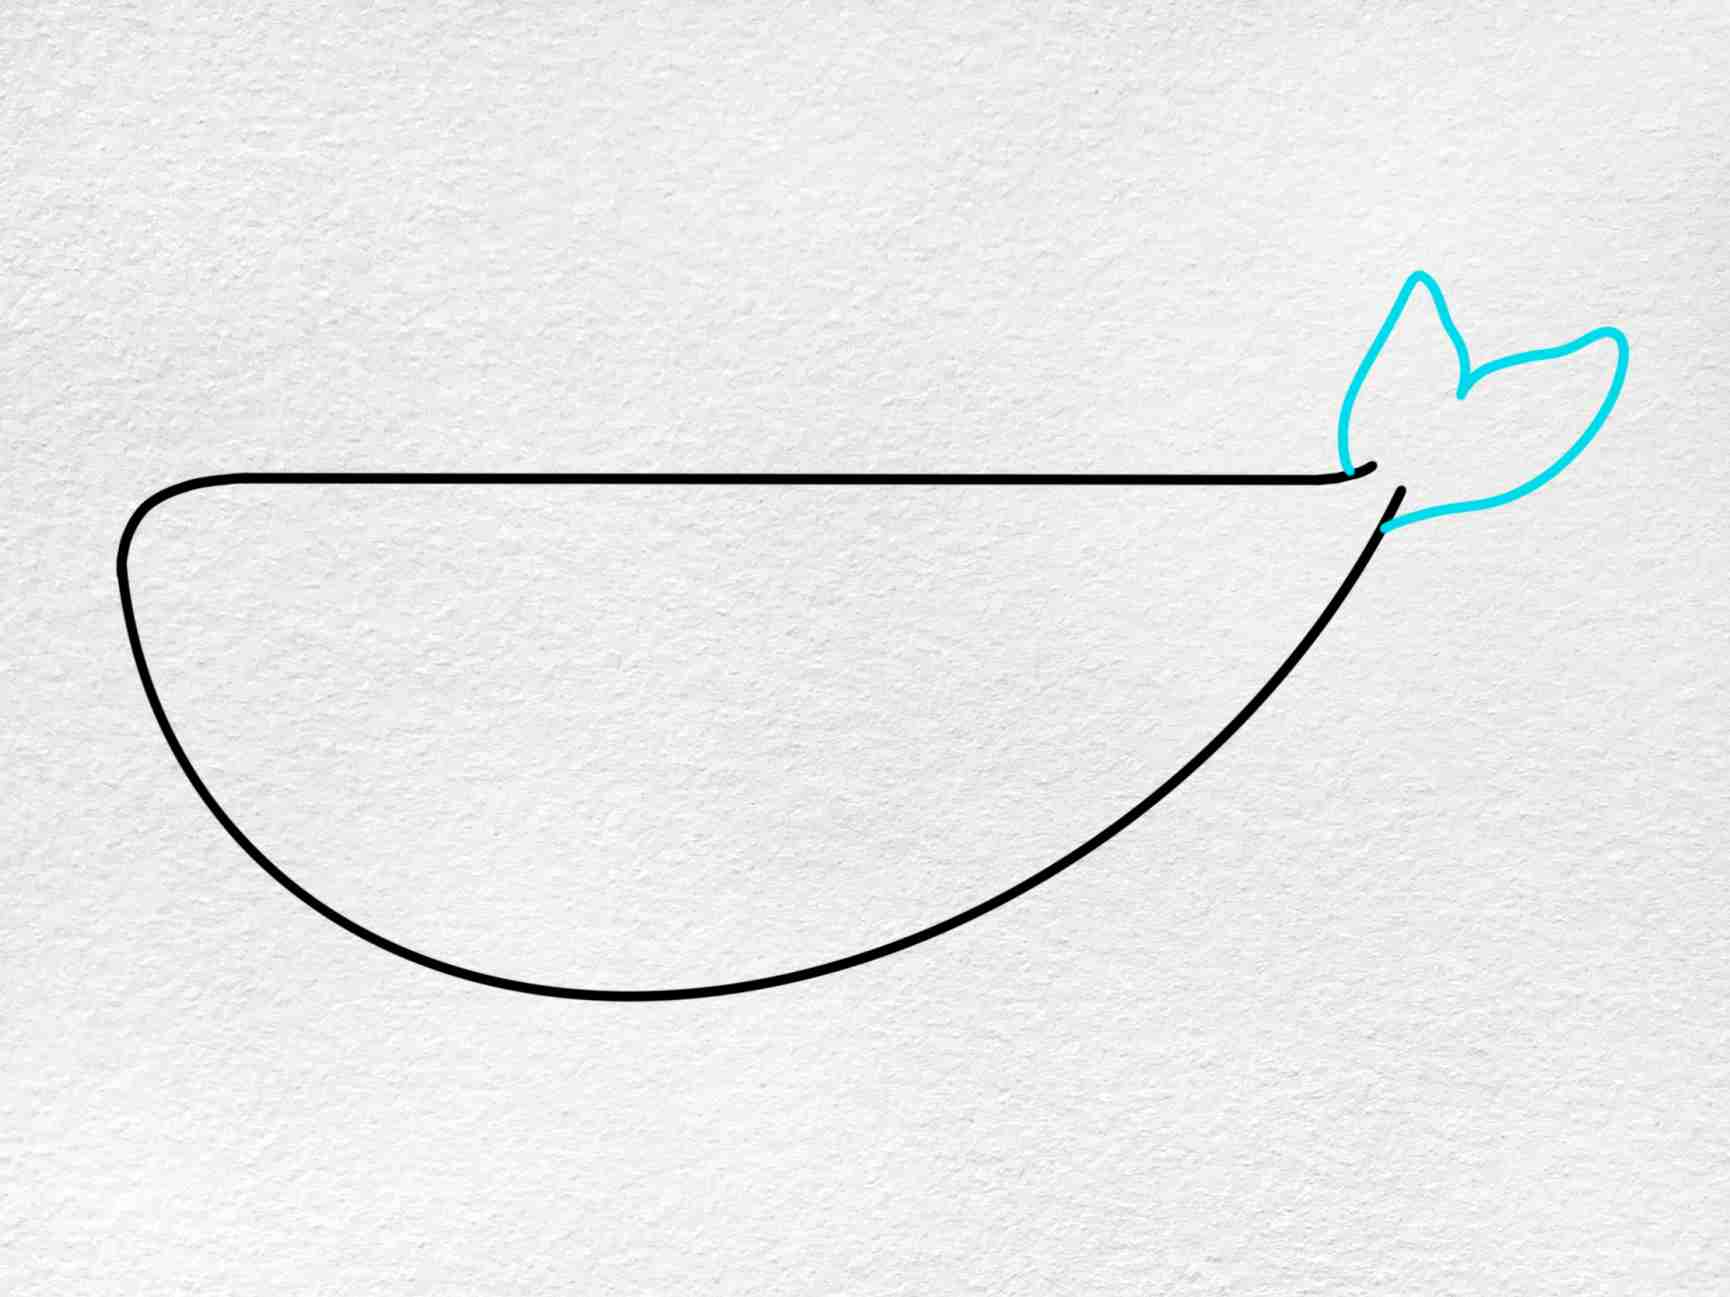 Cute Whale Drawing: Step 3